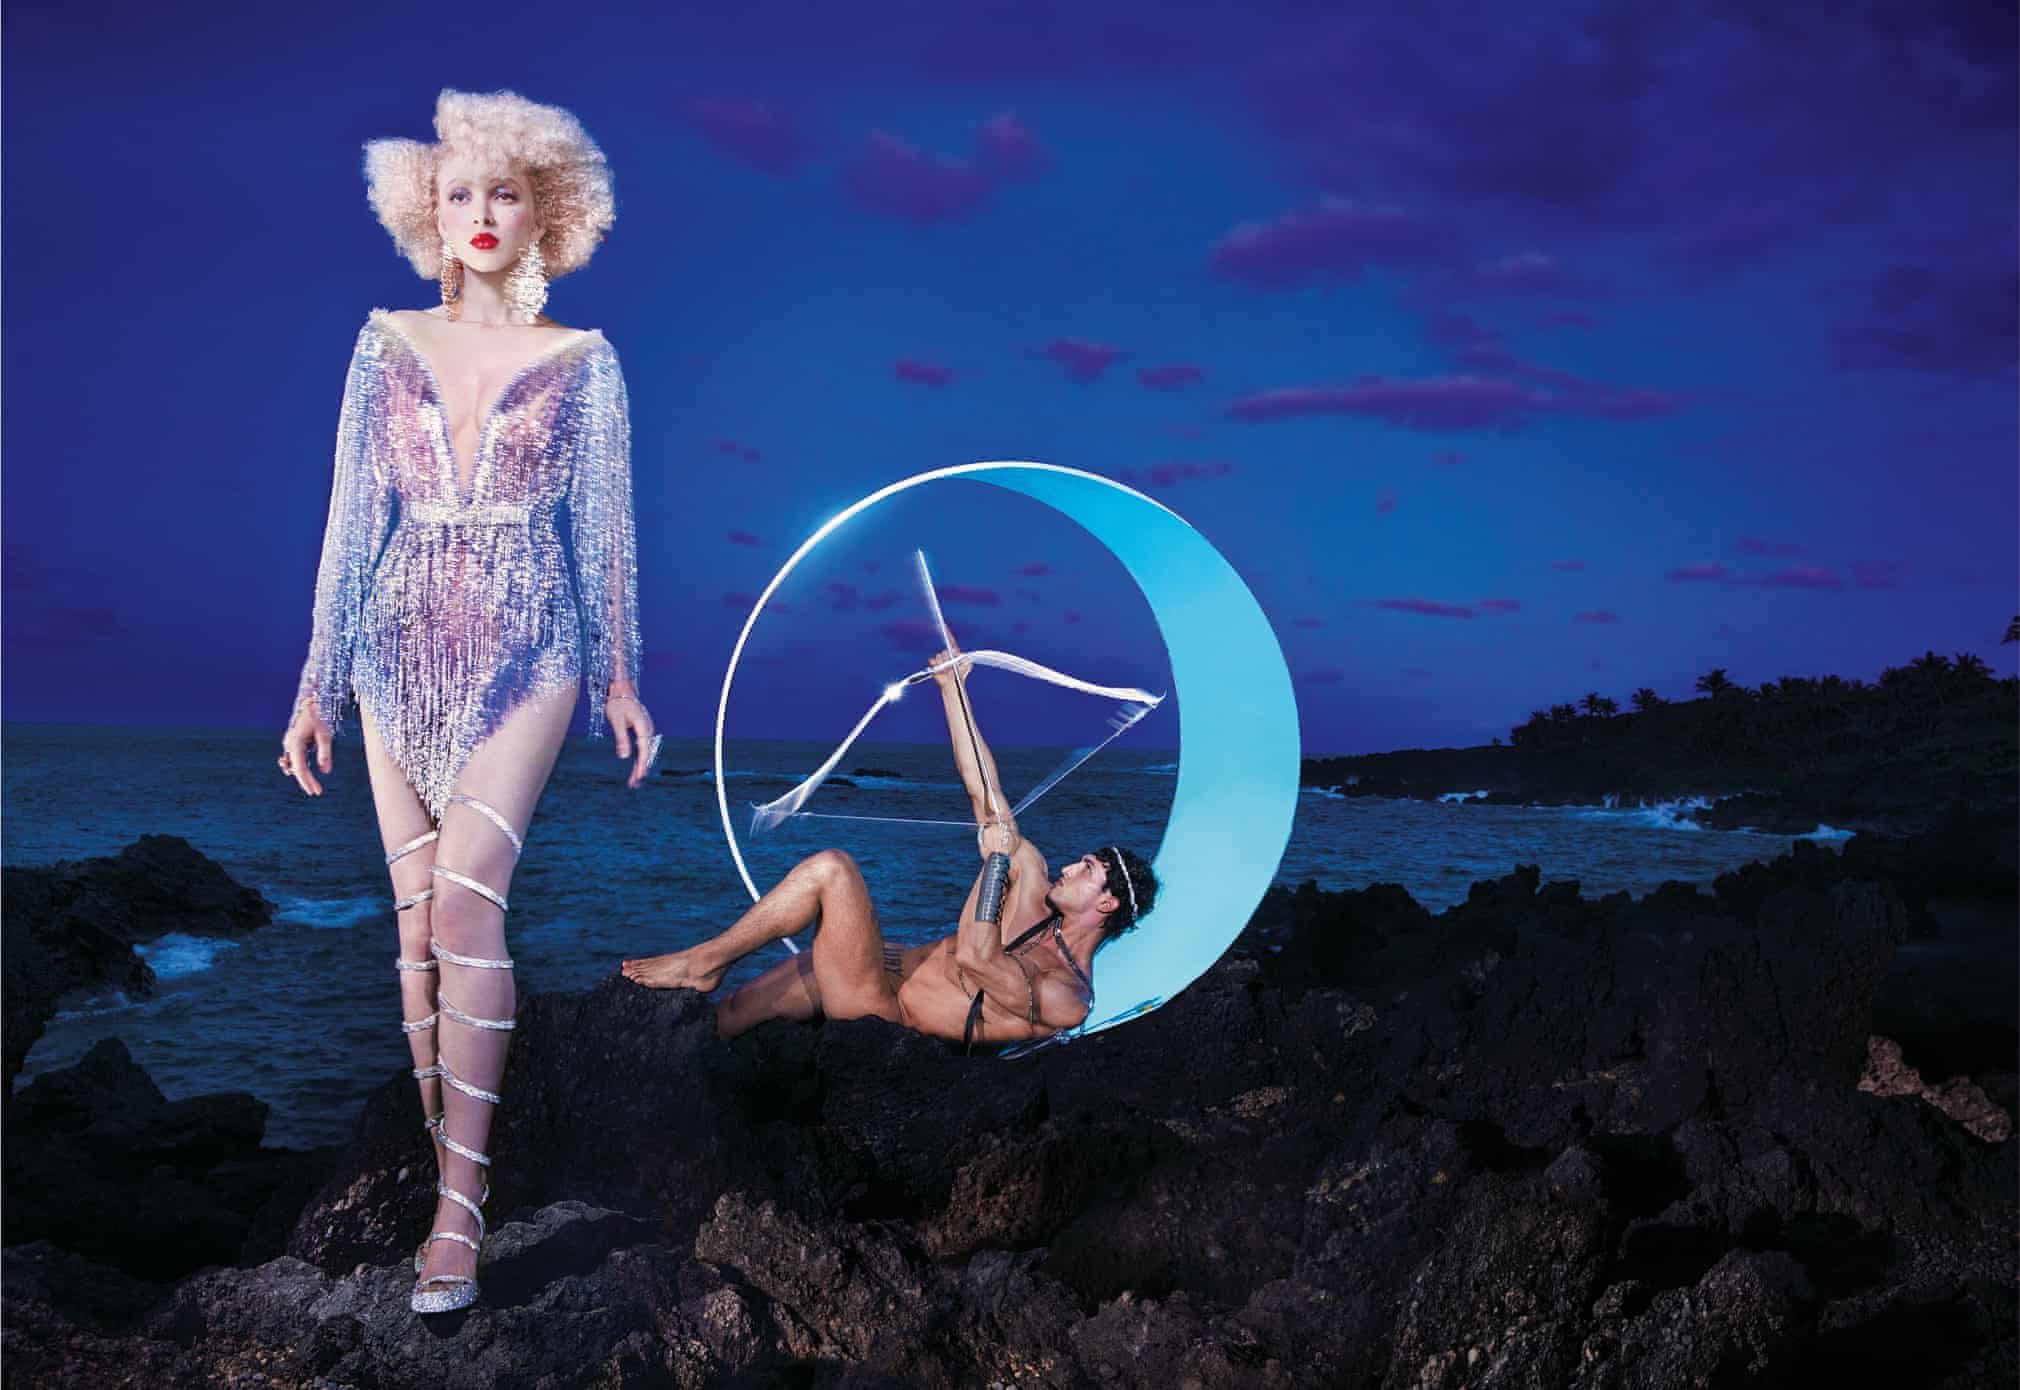 lavazza-x-david-lachapelle-2020-calendar-10